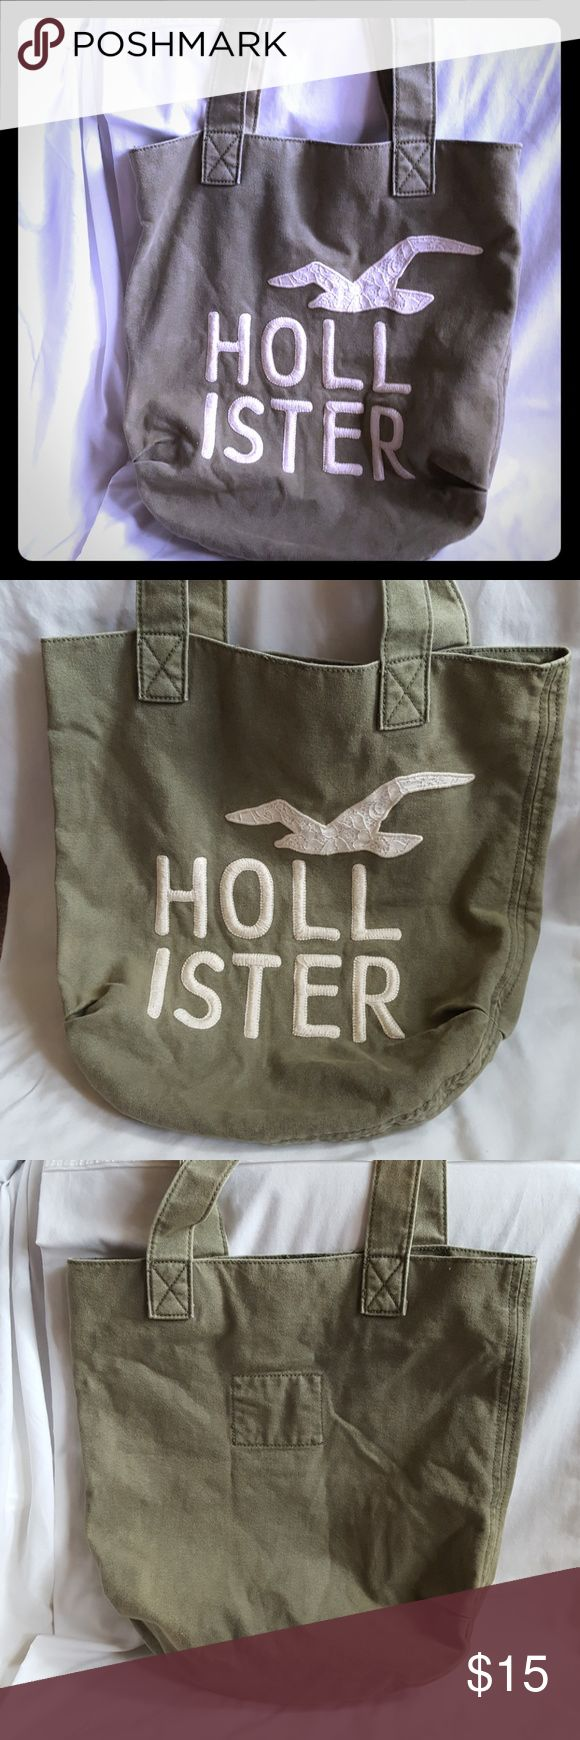 """Hollister Tote Bag in Army Green Classic Hollister tote bag in army green, khaki,  avocado or olive green. Bag is 16"""" tall x 15"""" wide. Handles add 8"""" to height.  Very good used condition. Smoke free and pet free home. Hollister Bags Totes"""